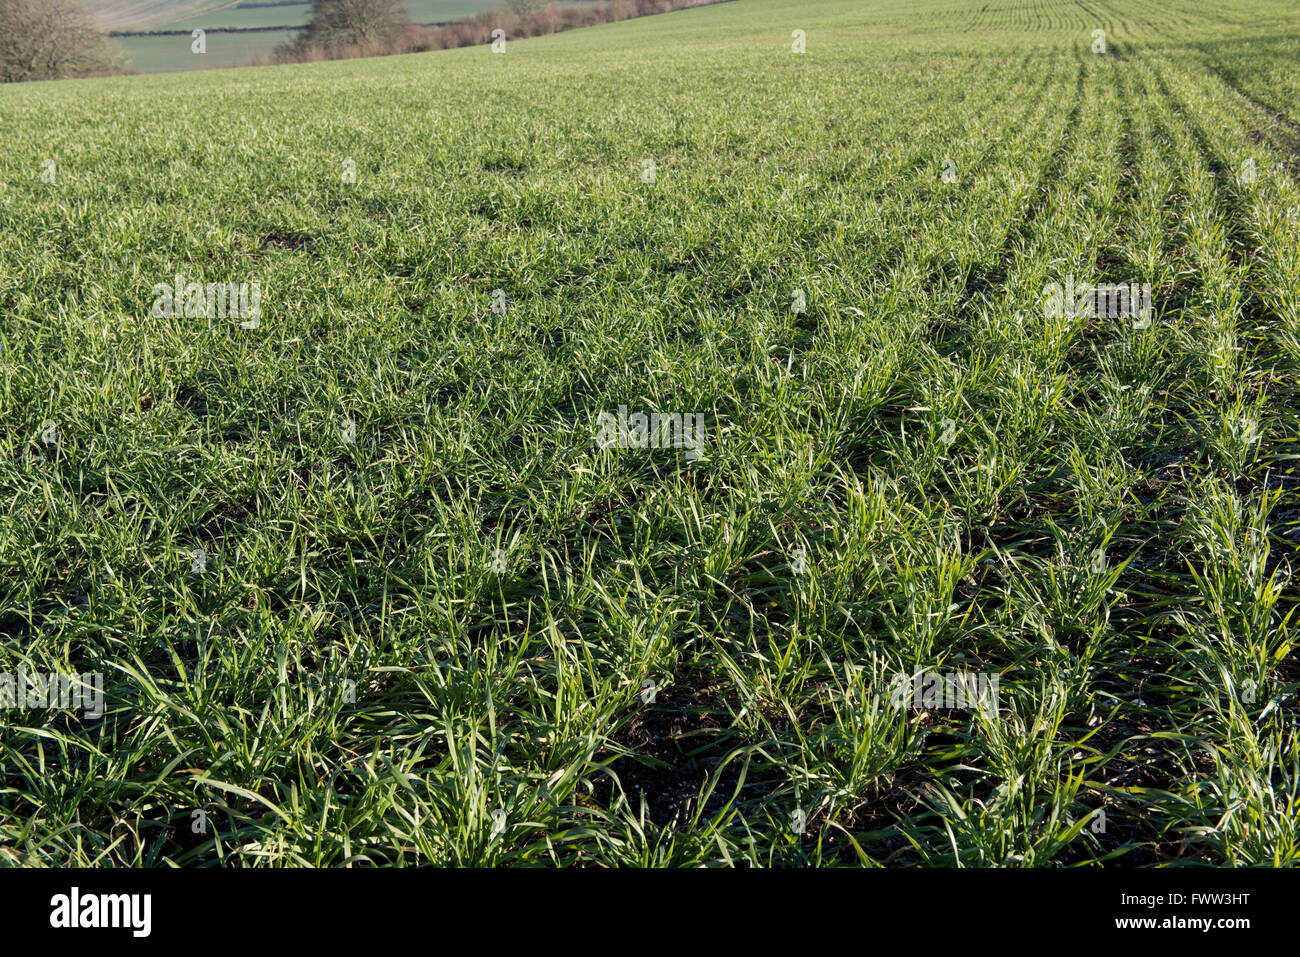 rows of a winter wheat crop with good aerial growth in